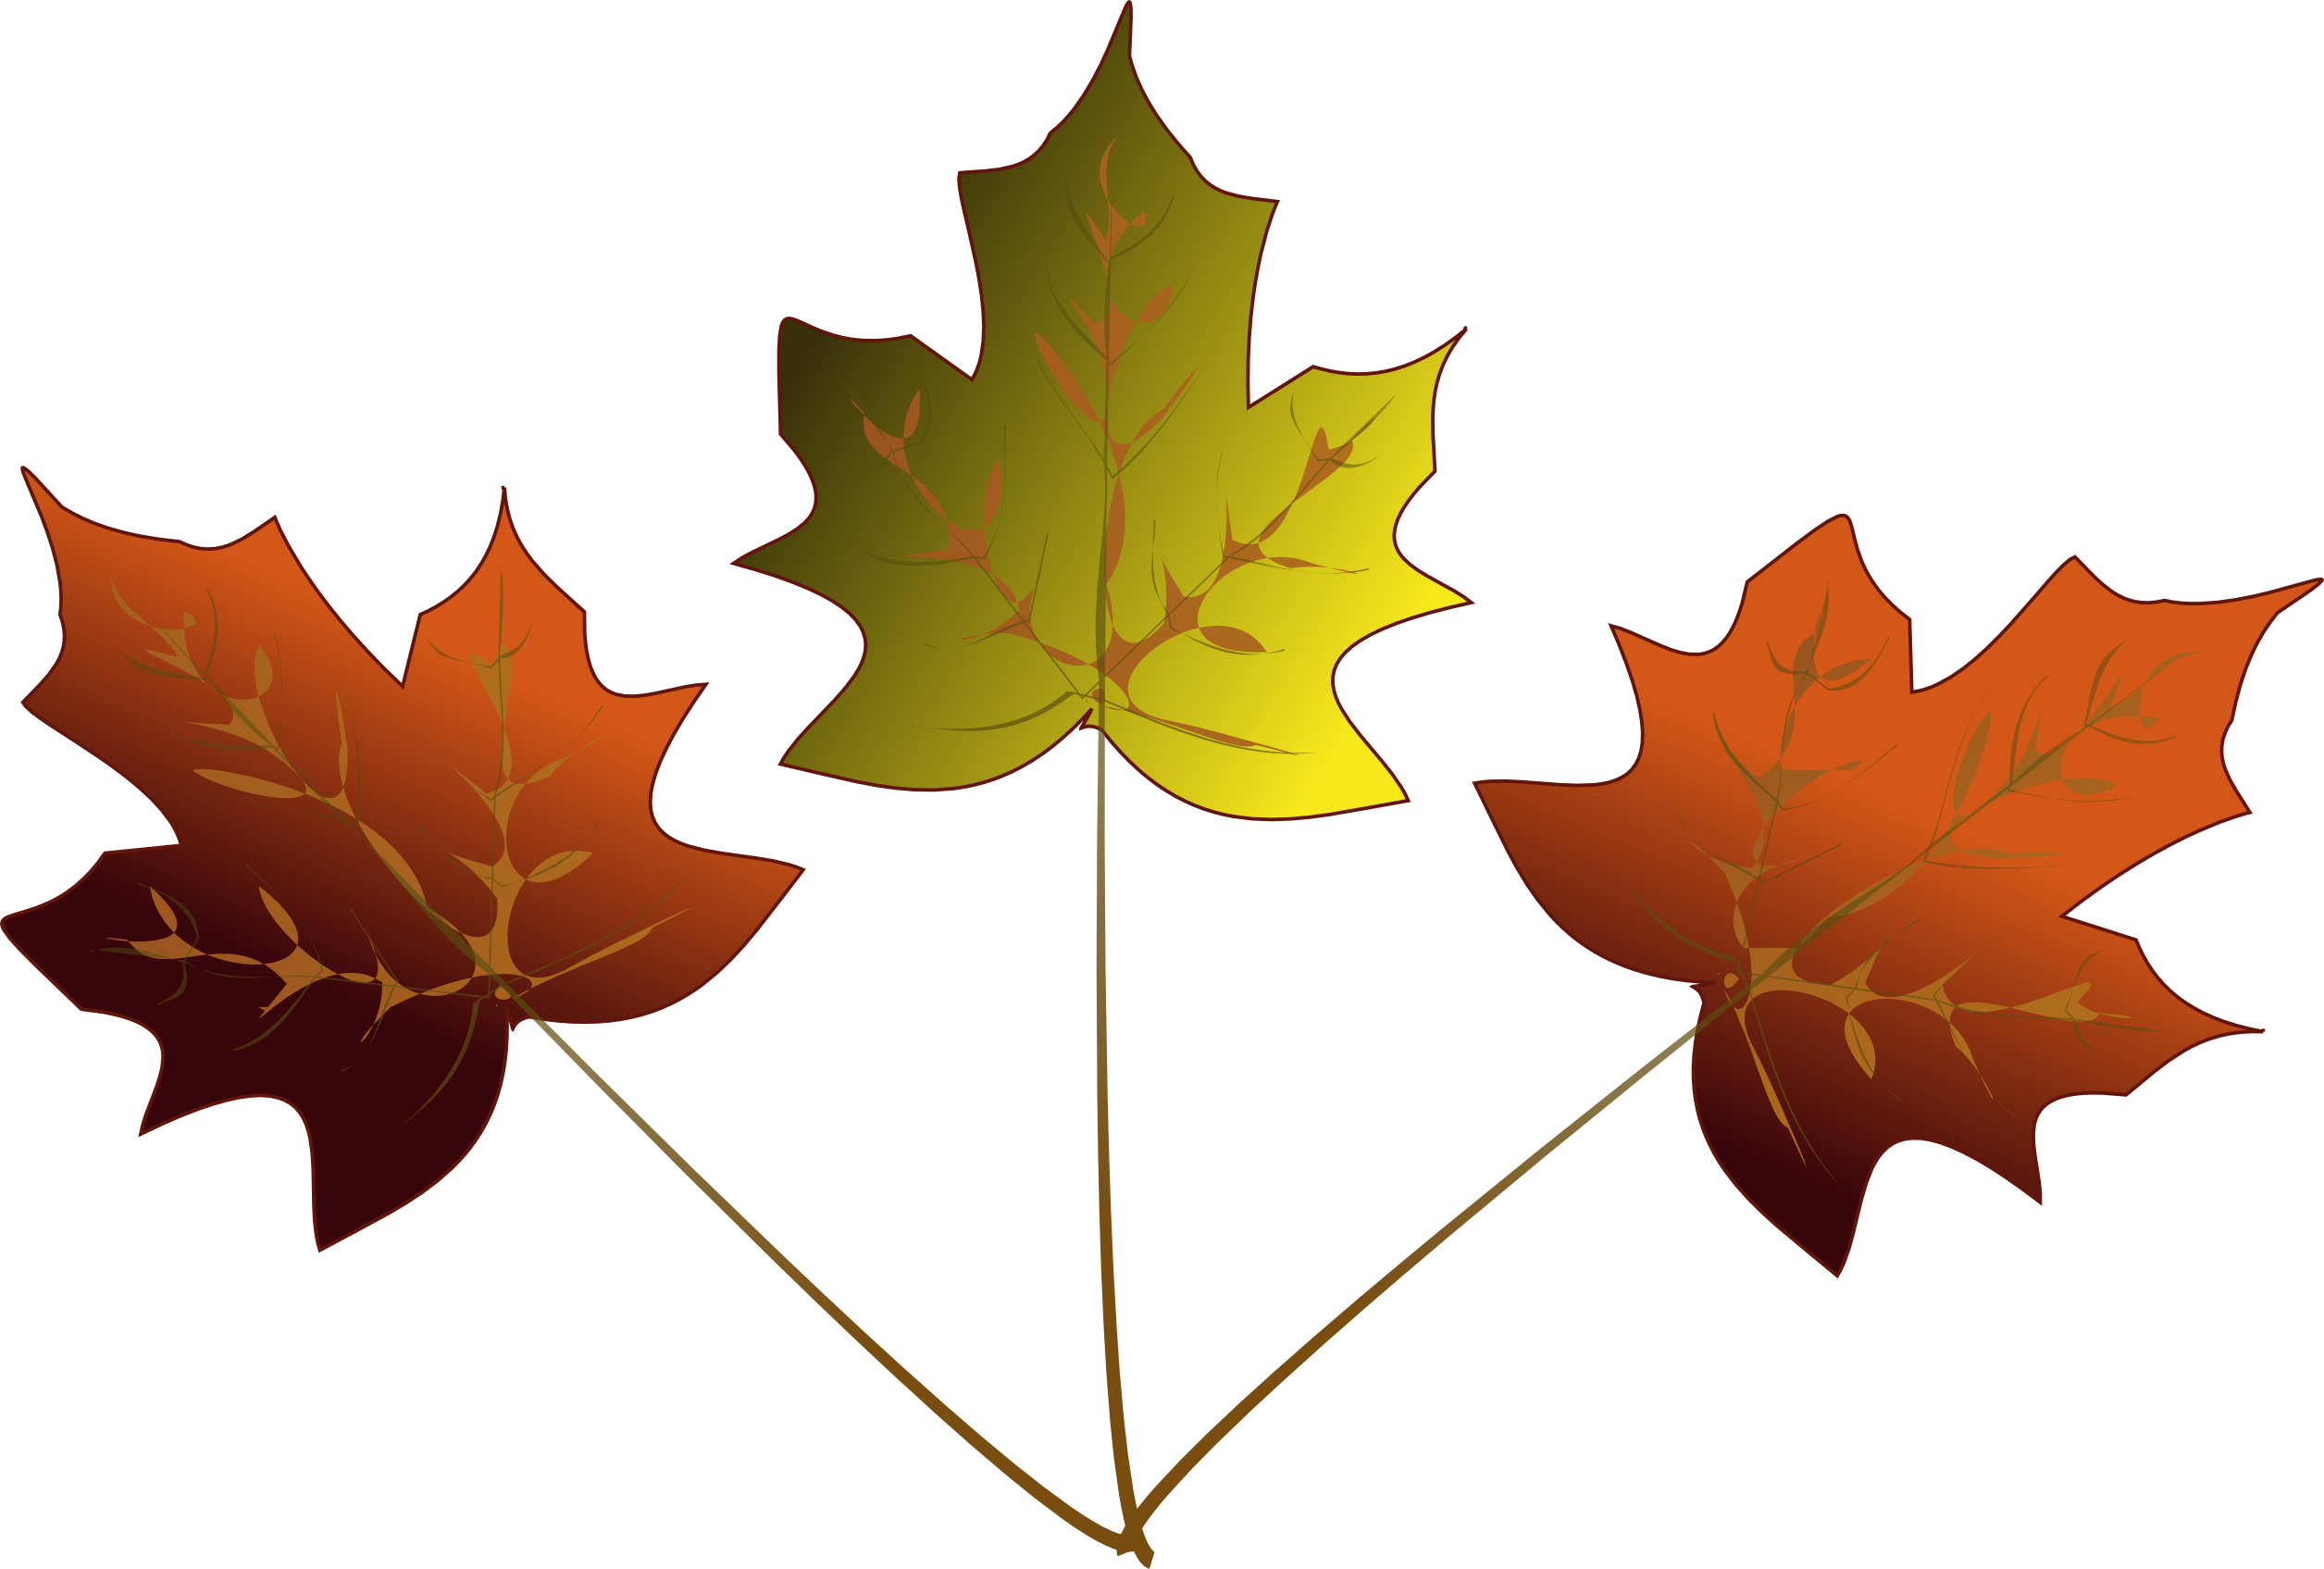 Another inkscape idea eye. Clipart leaves 3 leaves